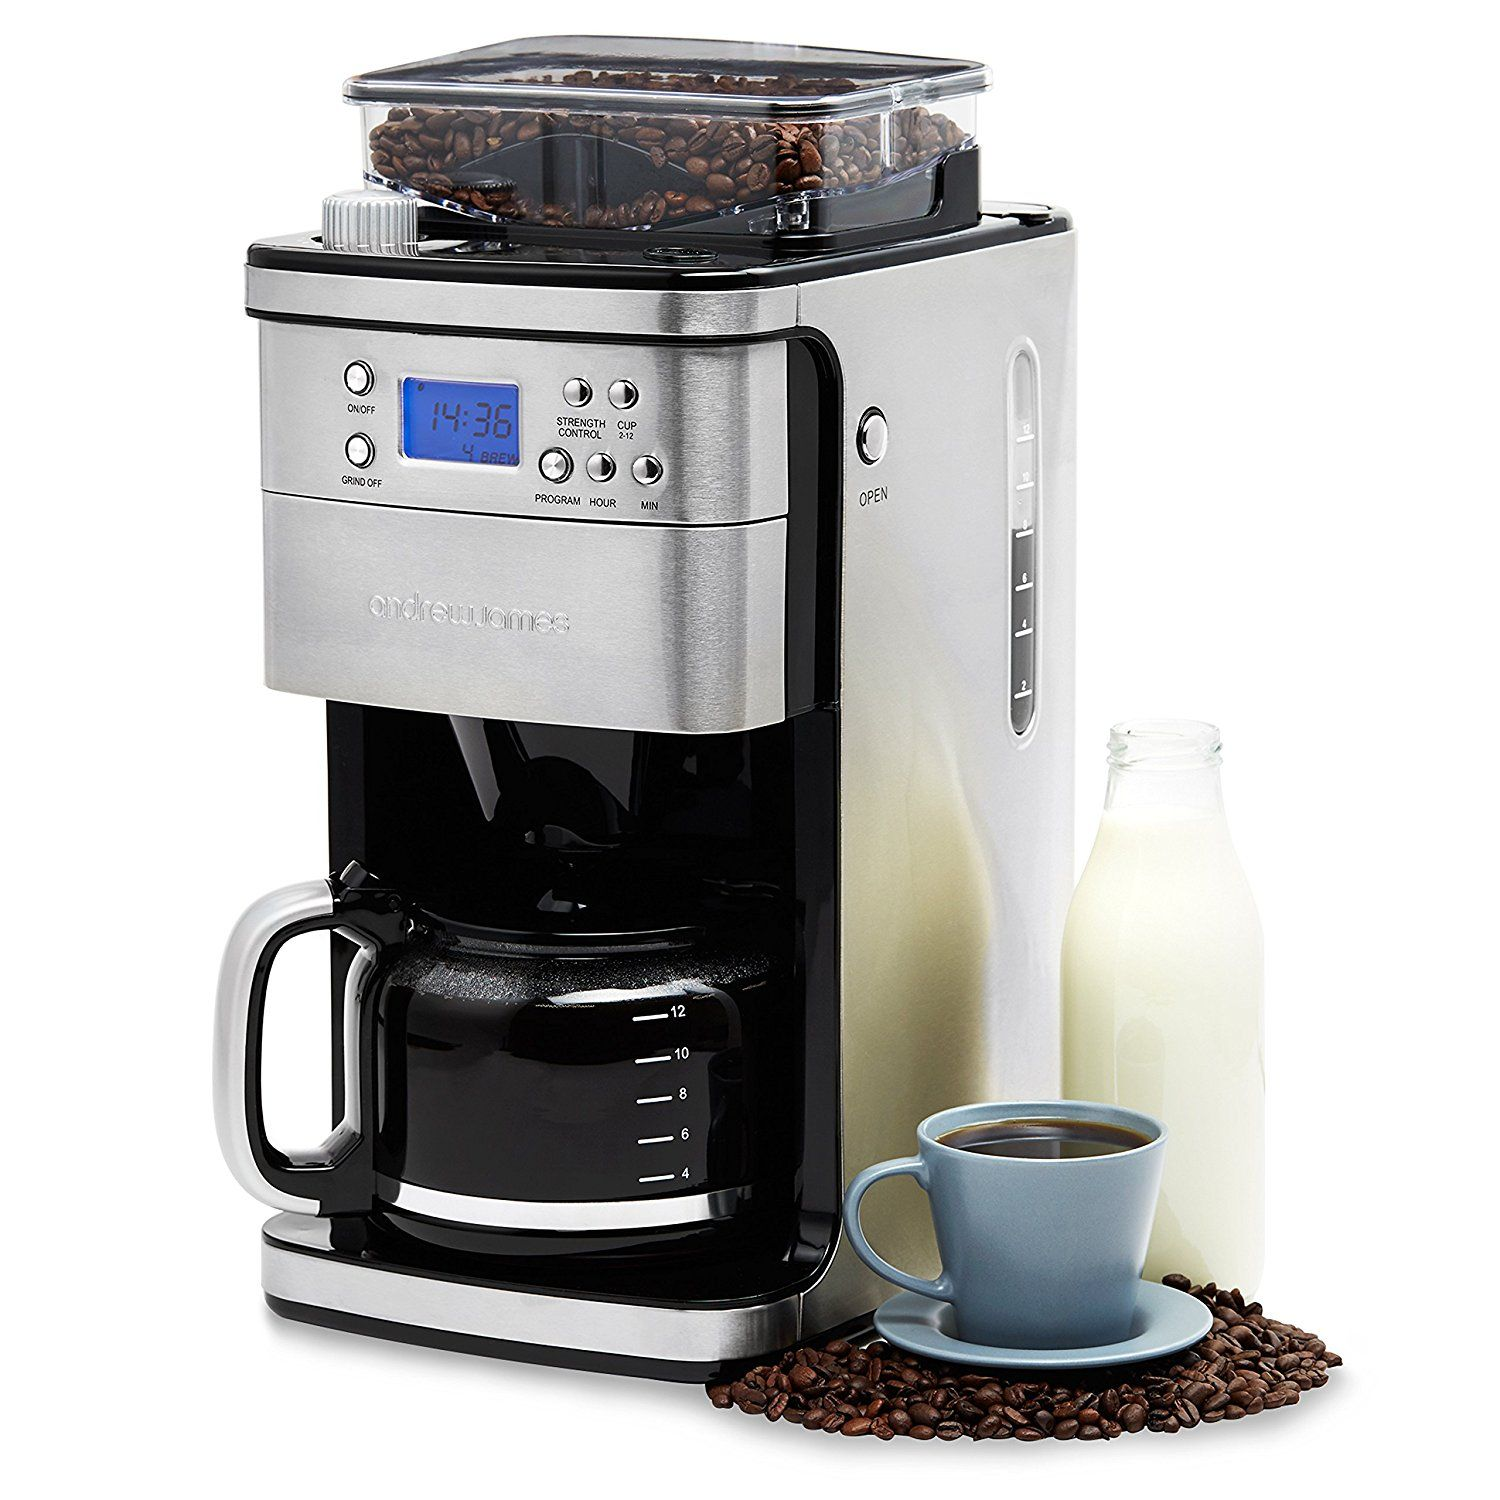 Coffee Maker Machine 12 Cup Programmable Automatic Grinder Built Reusable Filter Koffie Pinterest And Cups